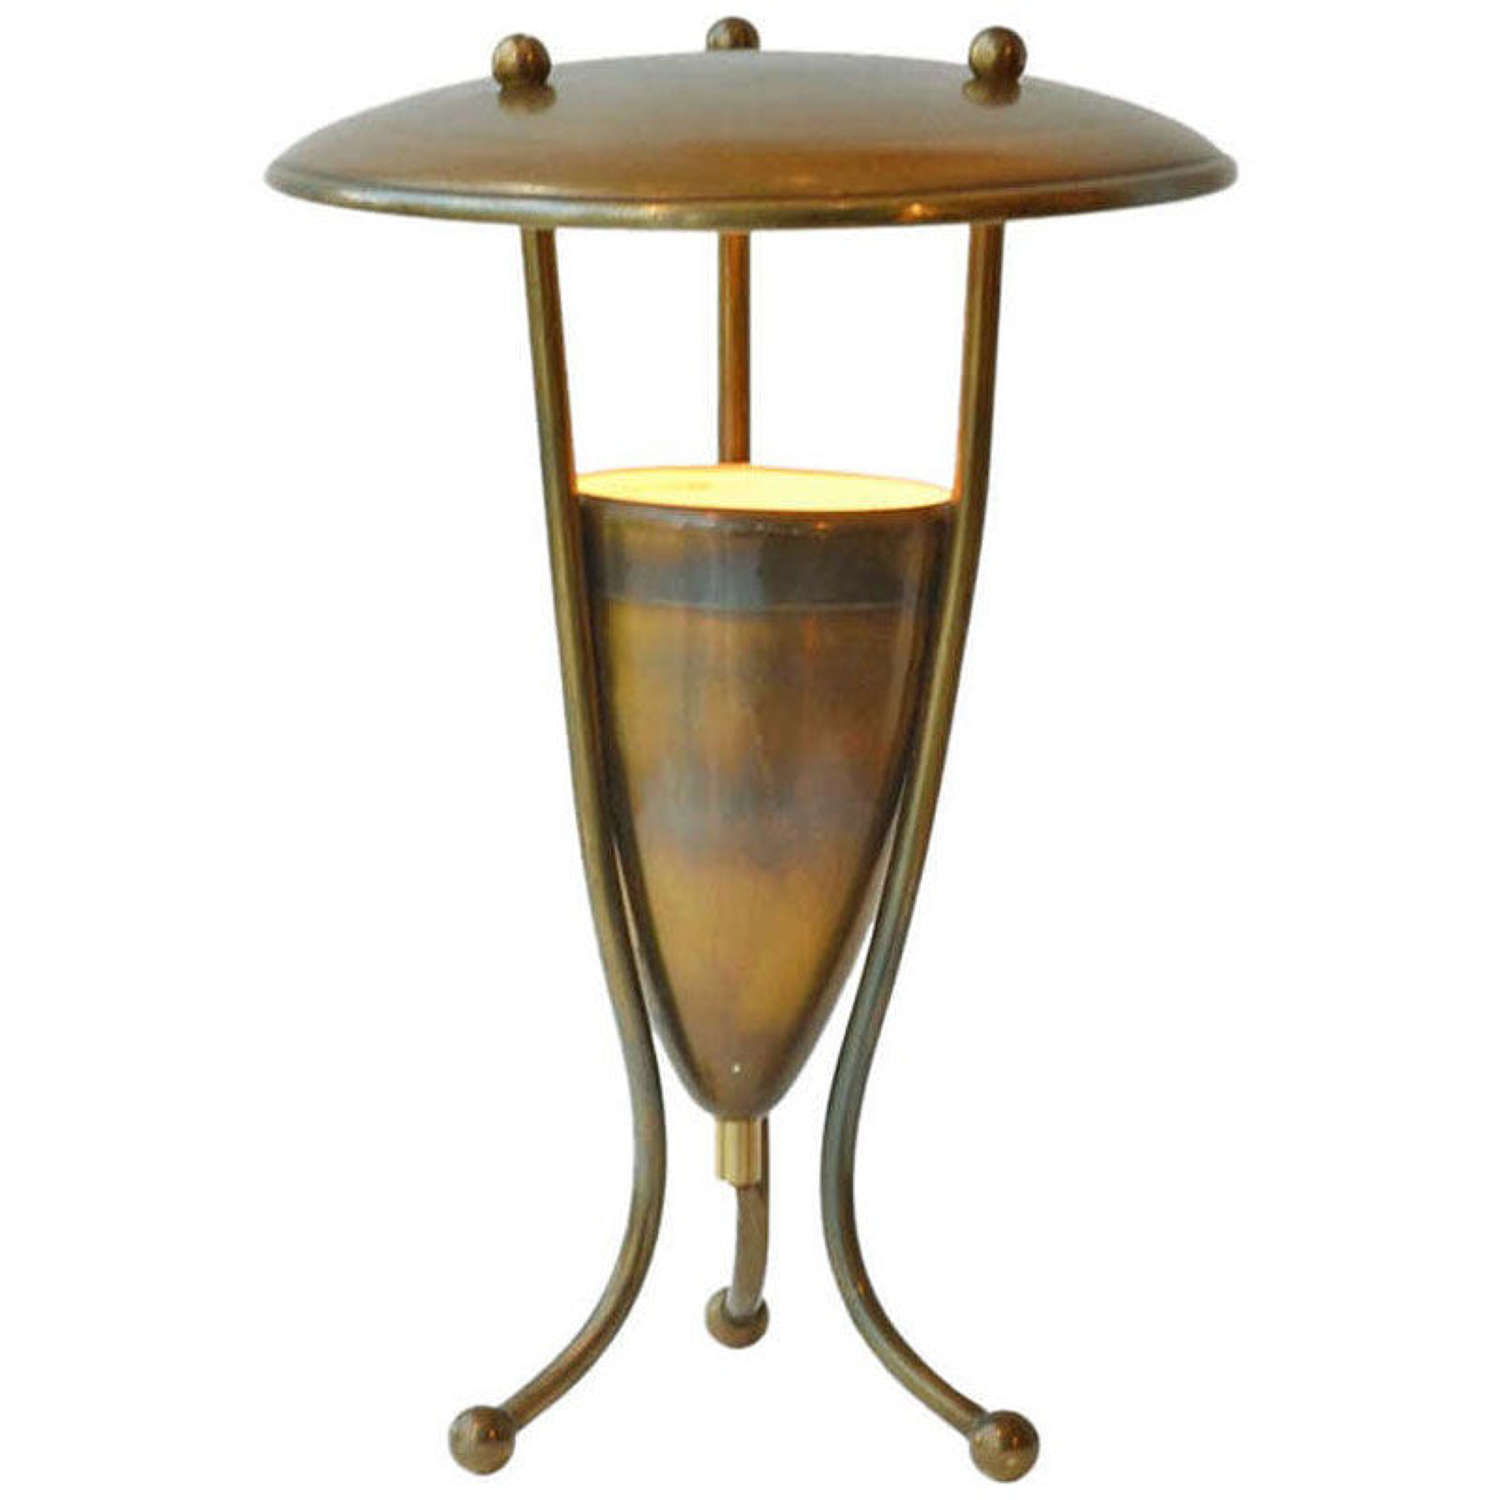 Brass Table Lamp on Tripod Legs French 1950's